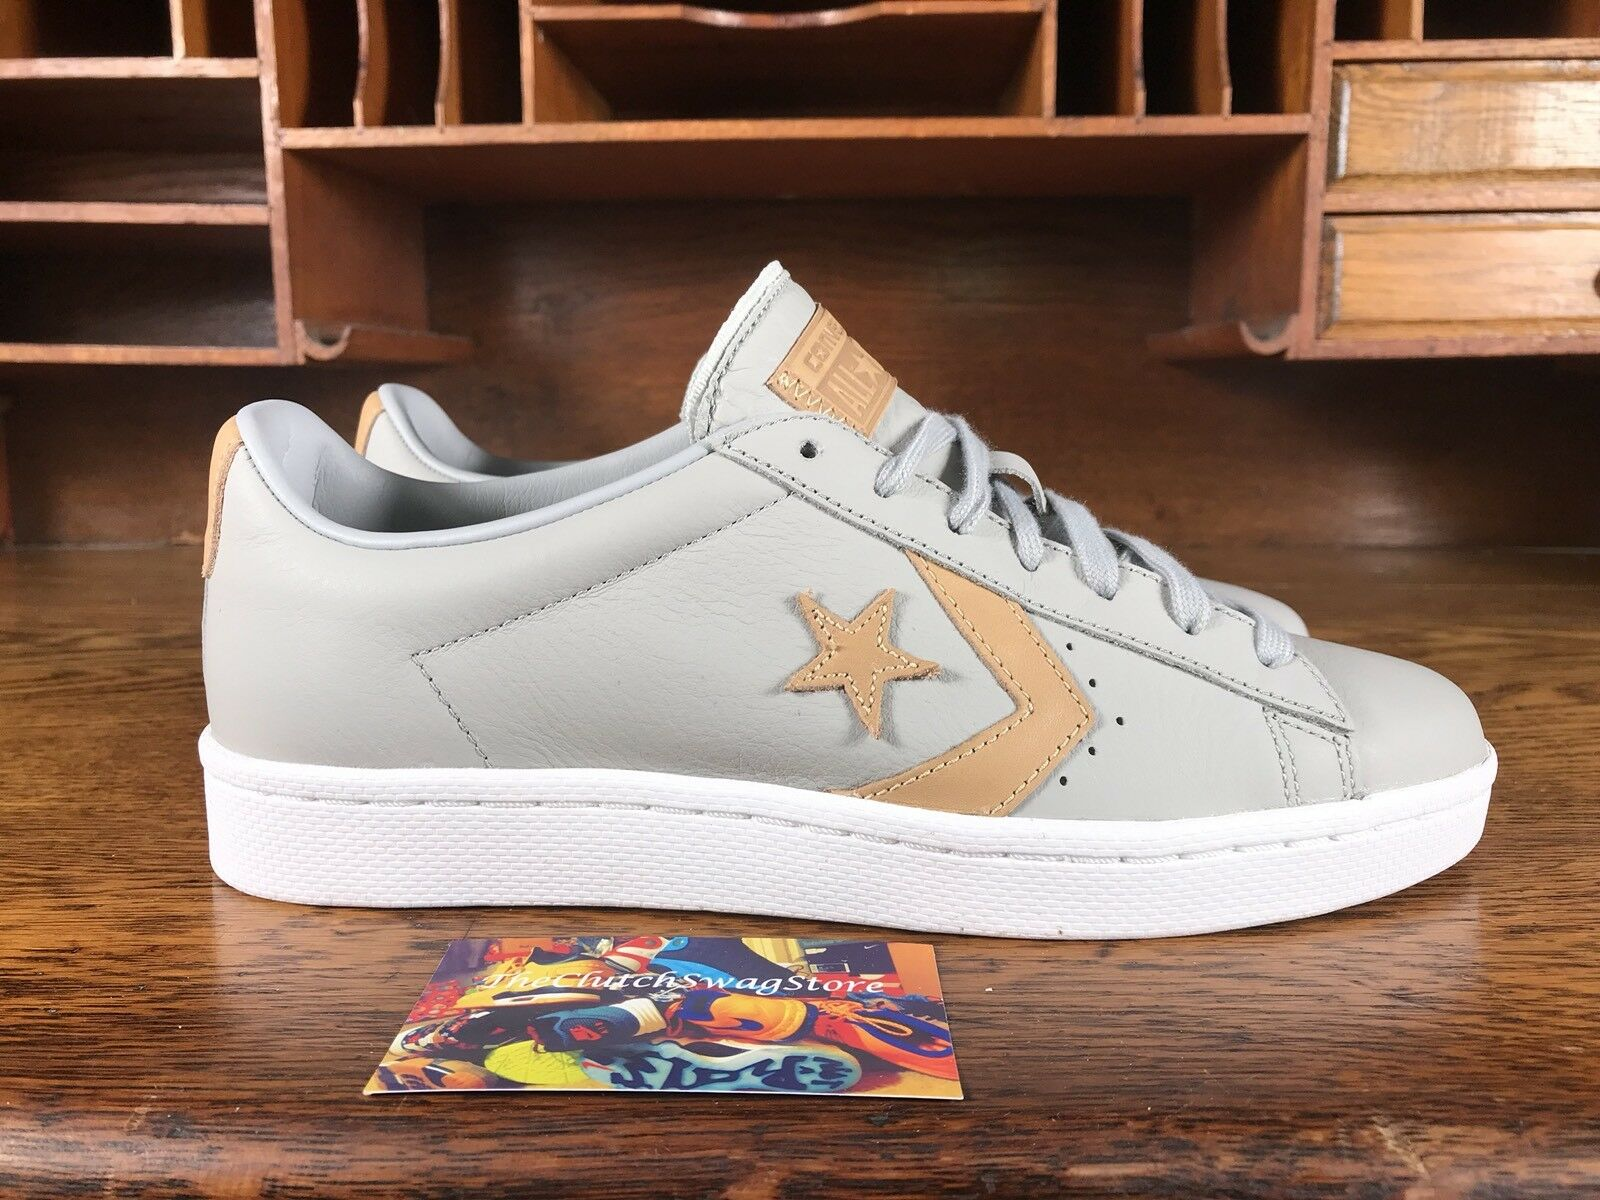 Converse Pro Leather 76 Low Top baskets gris Tan 155666C Multi Tailles Available